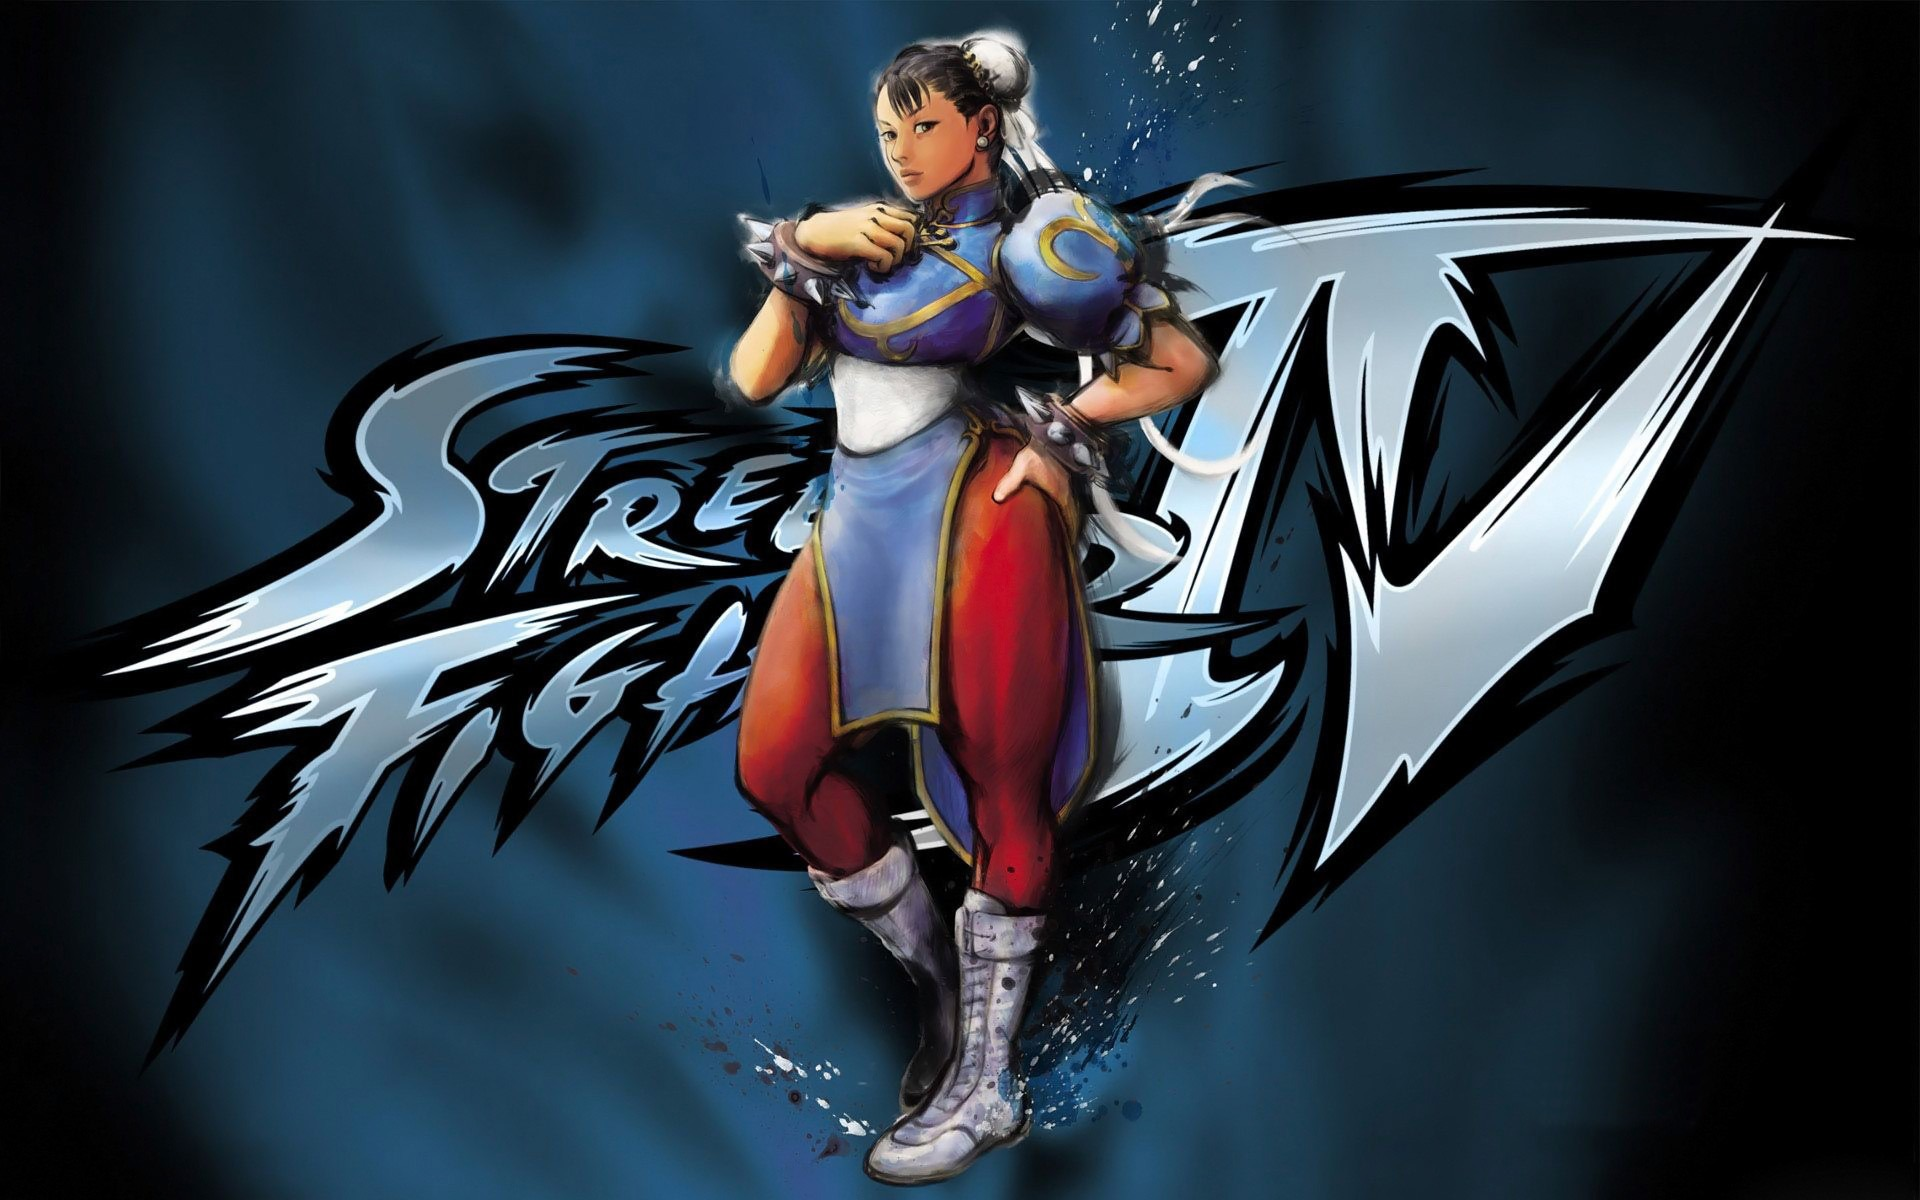 Chunli Street Fighter 5 Game Hd Wallpaper Preview 10wallpaper Com